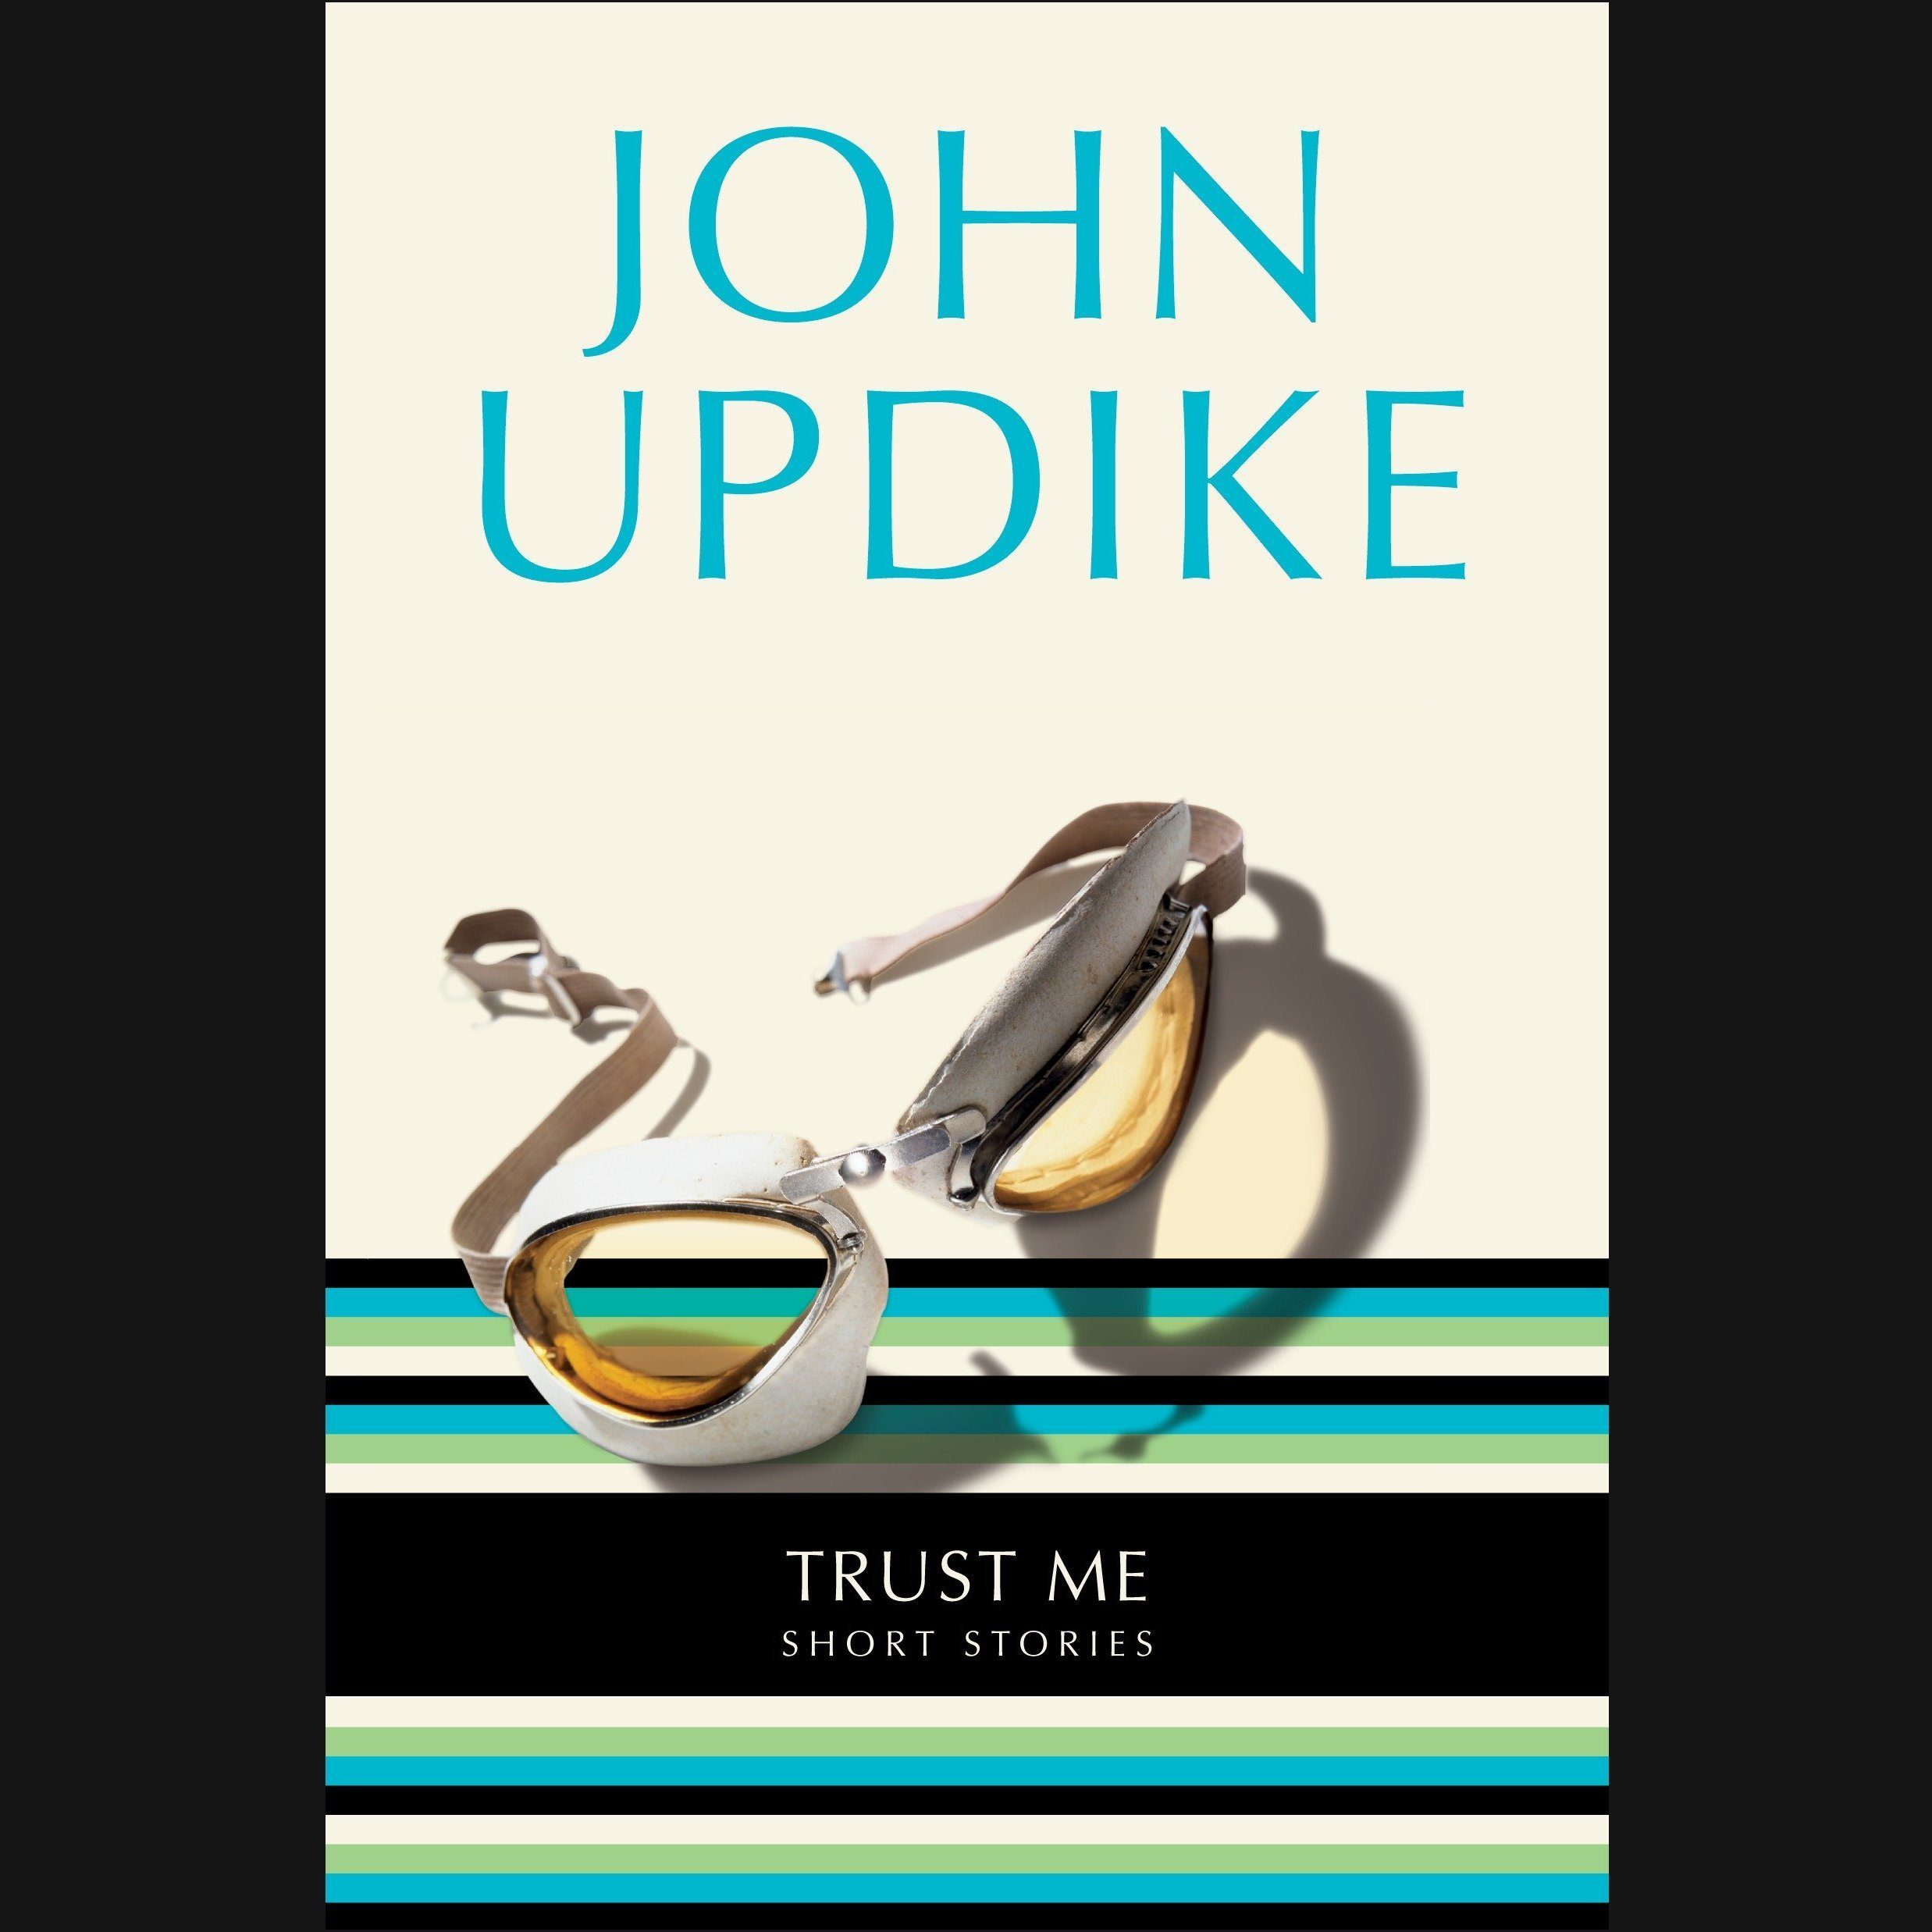 """outage by john updike The first installment of a new column on new yorker fiction, past and present, by writer and editor benjamin chambers stories discussed: john updike's """"outage,"""" published january 7, 2008, and """"friends from philadelphia,"""" published october 30, 1954."""